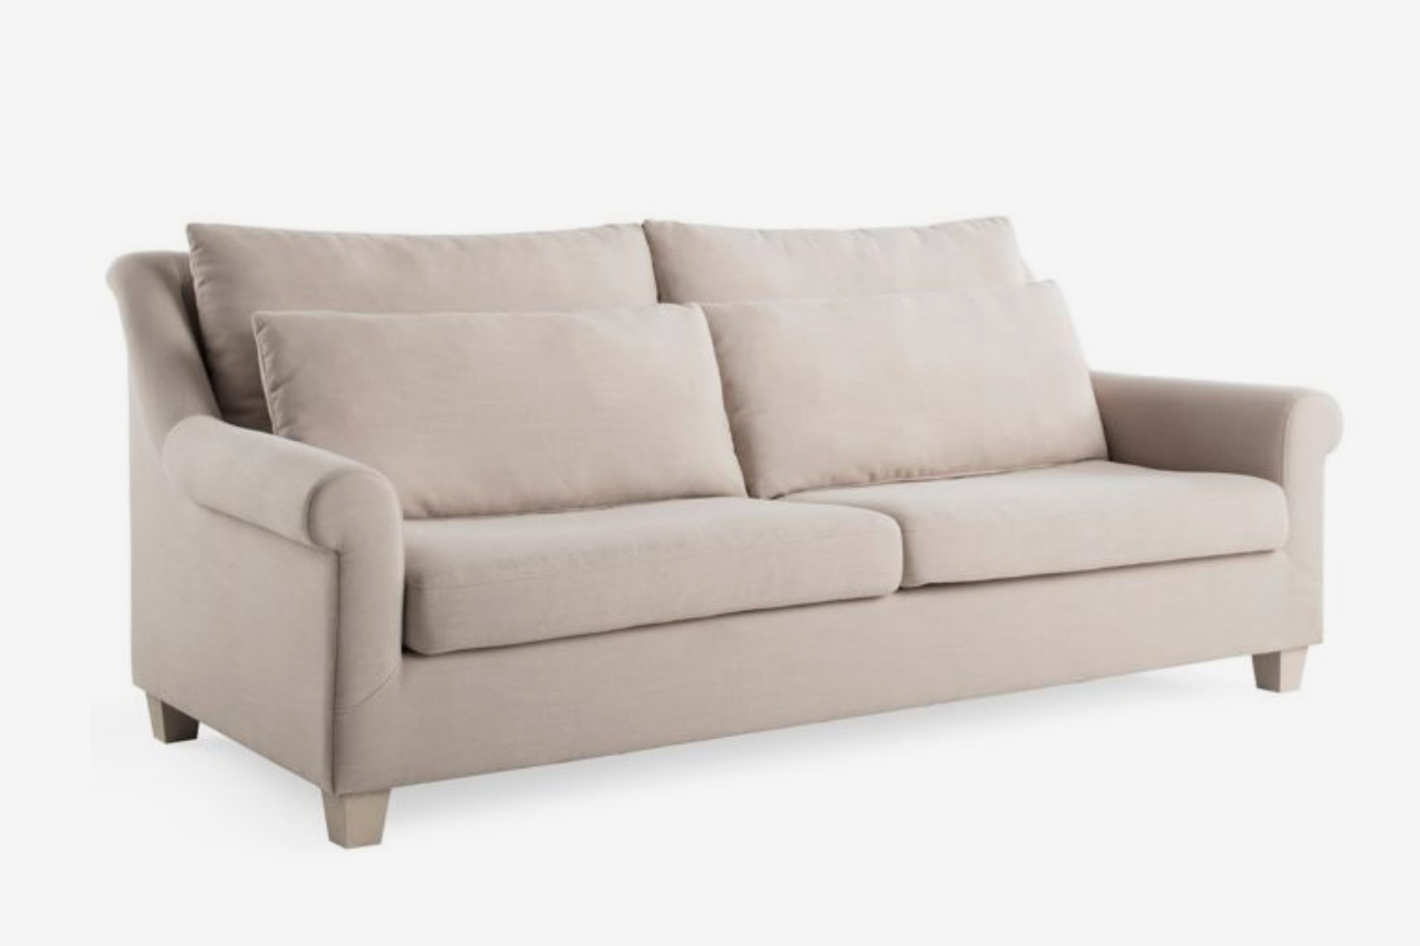 A Couch Bed Bee u0026 Willow Home Roll Arm Sofa at Bed Bath u0026 Beyond